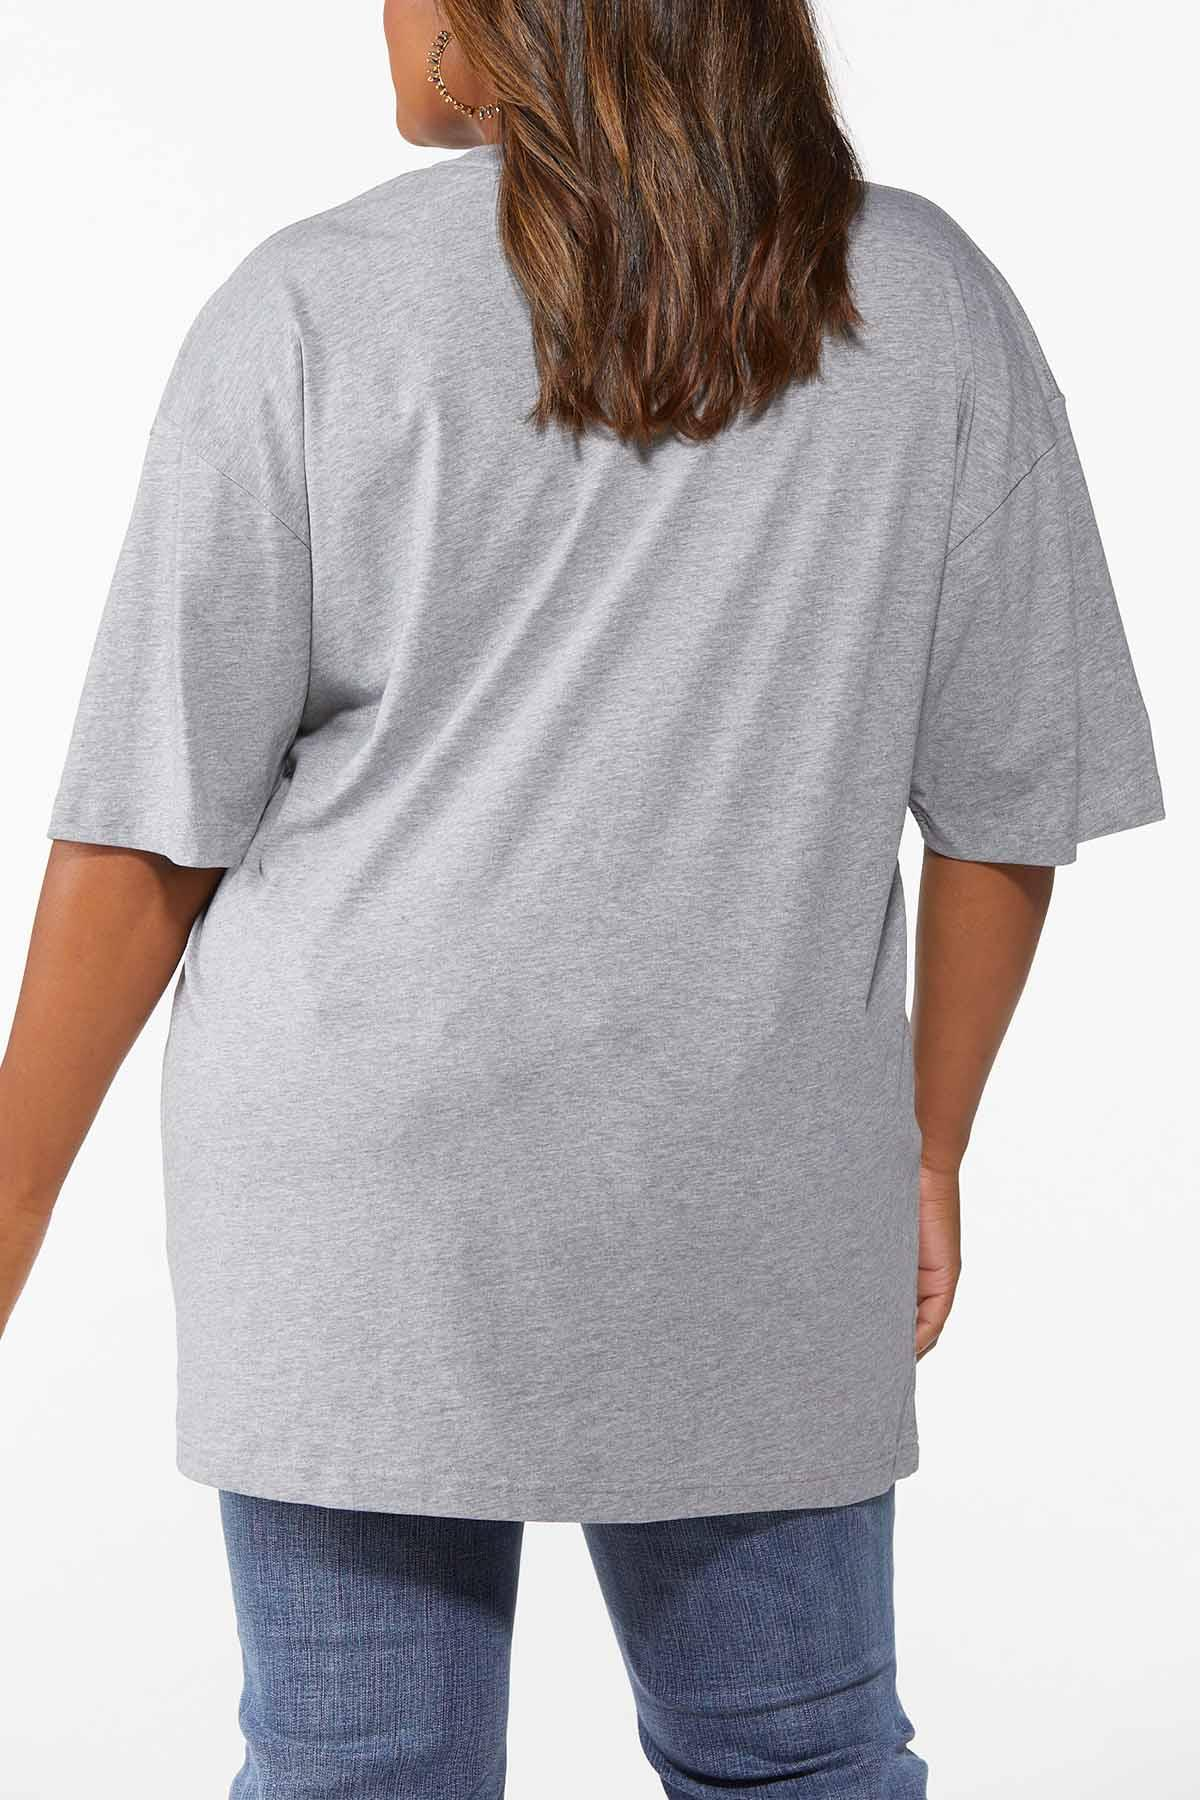 Plus Size Today Is The Day Tee (Item #44831437)